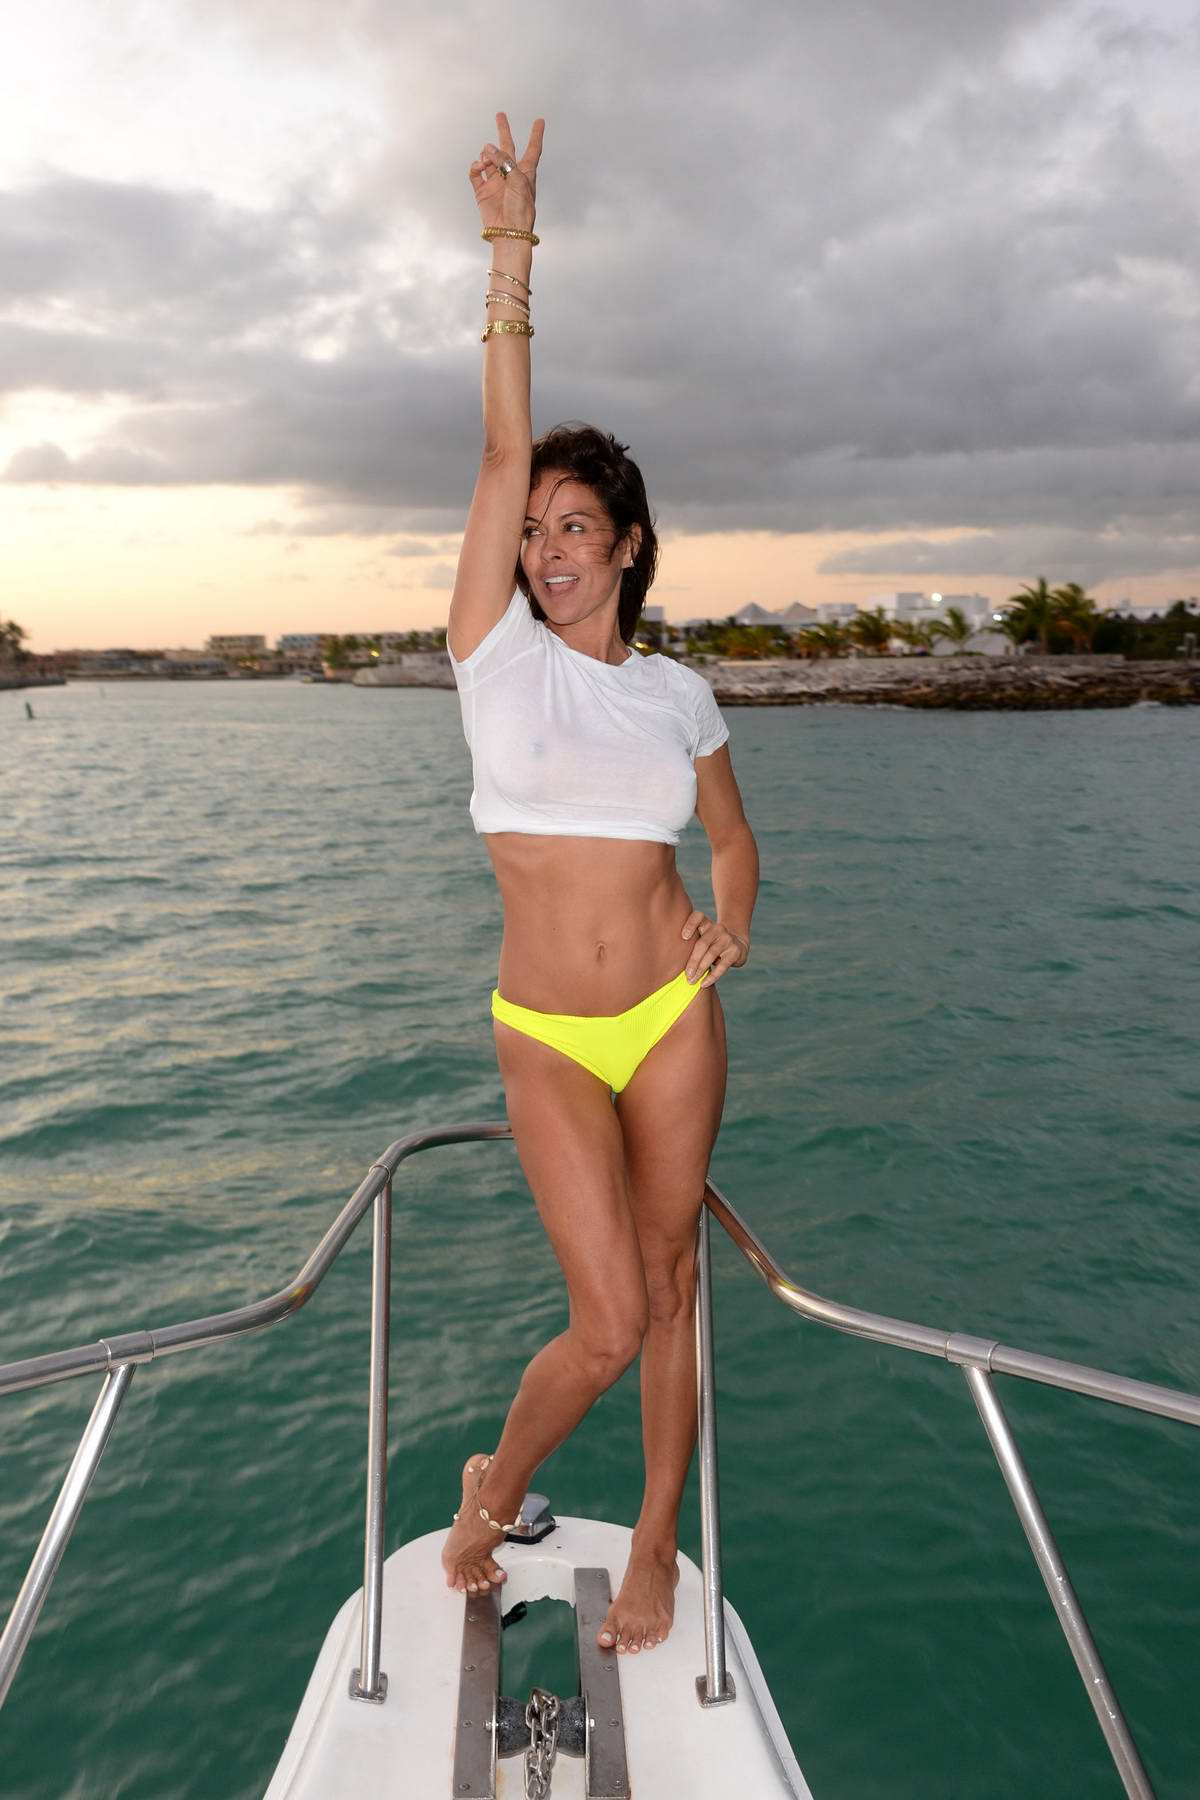 Brooke Burke wears a white crop top and yellow bikini bottoms while enjoying a day on a yacht in Dominican Republic